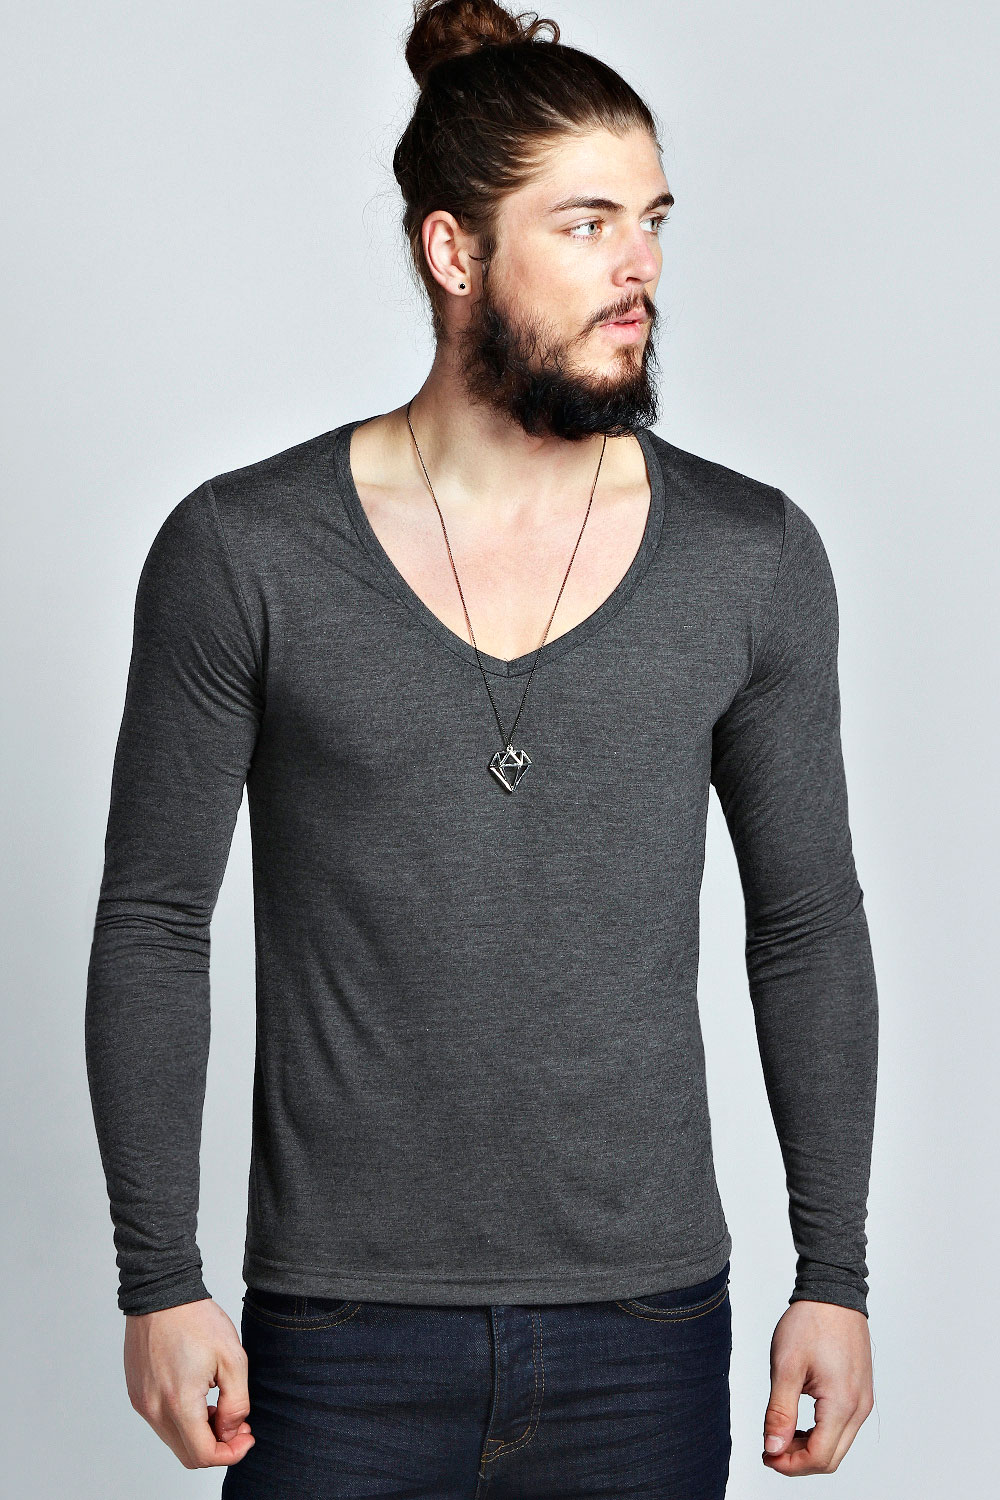 S&S Activewear's selection and prices in the market of wholesale V-Neck is unrivaled. With S&S Activewear, all orders over $ in V-Neck receive free shipping!